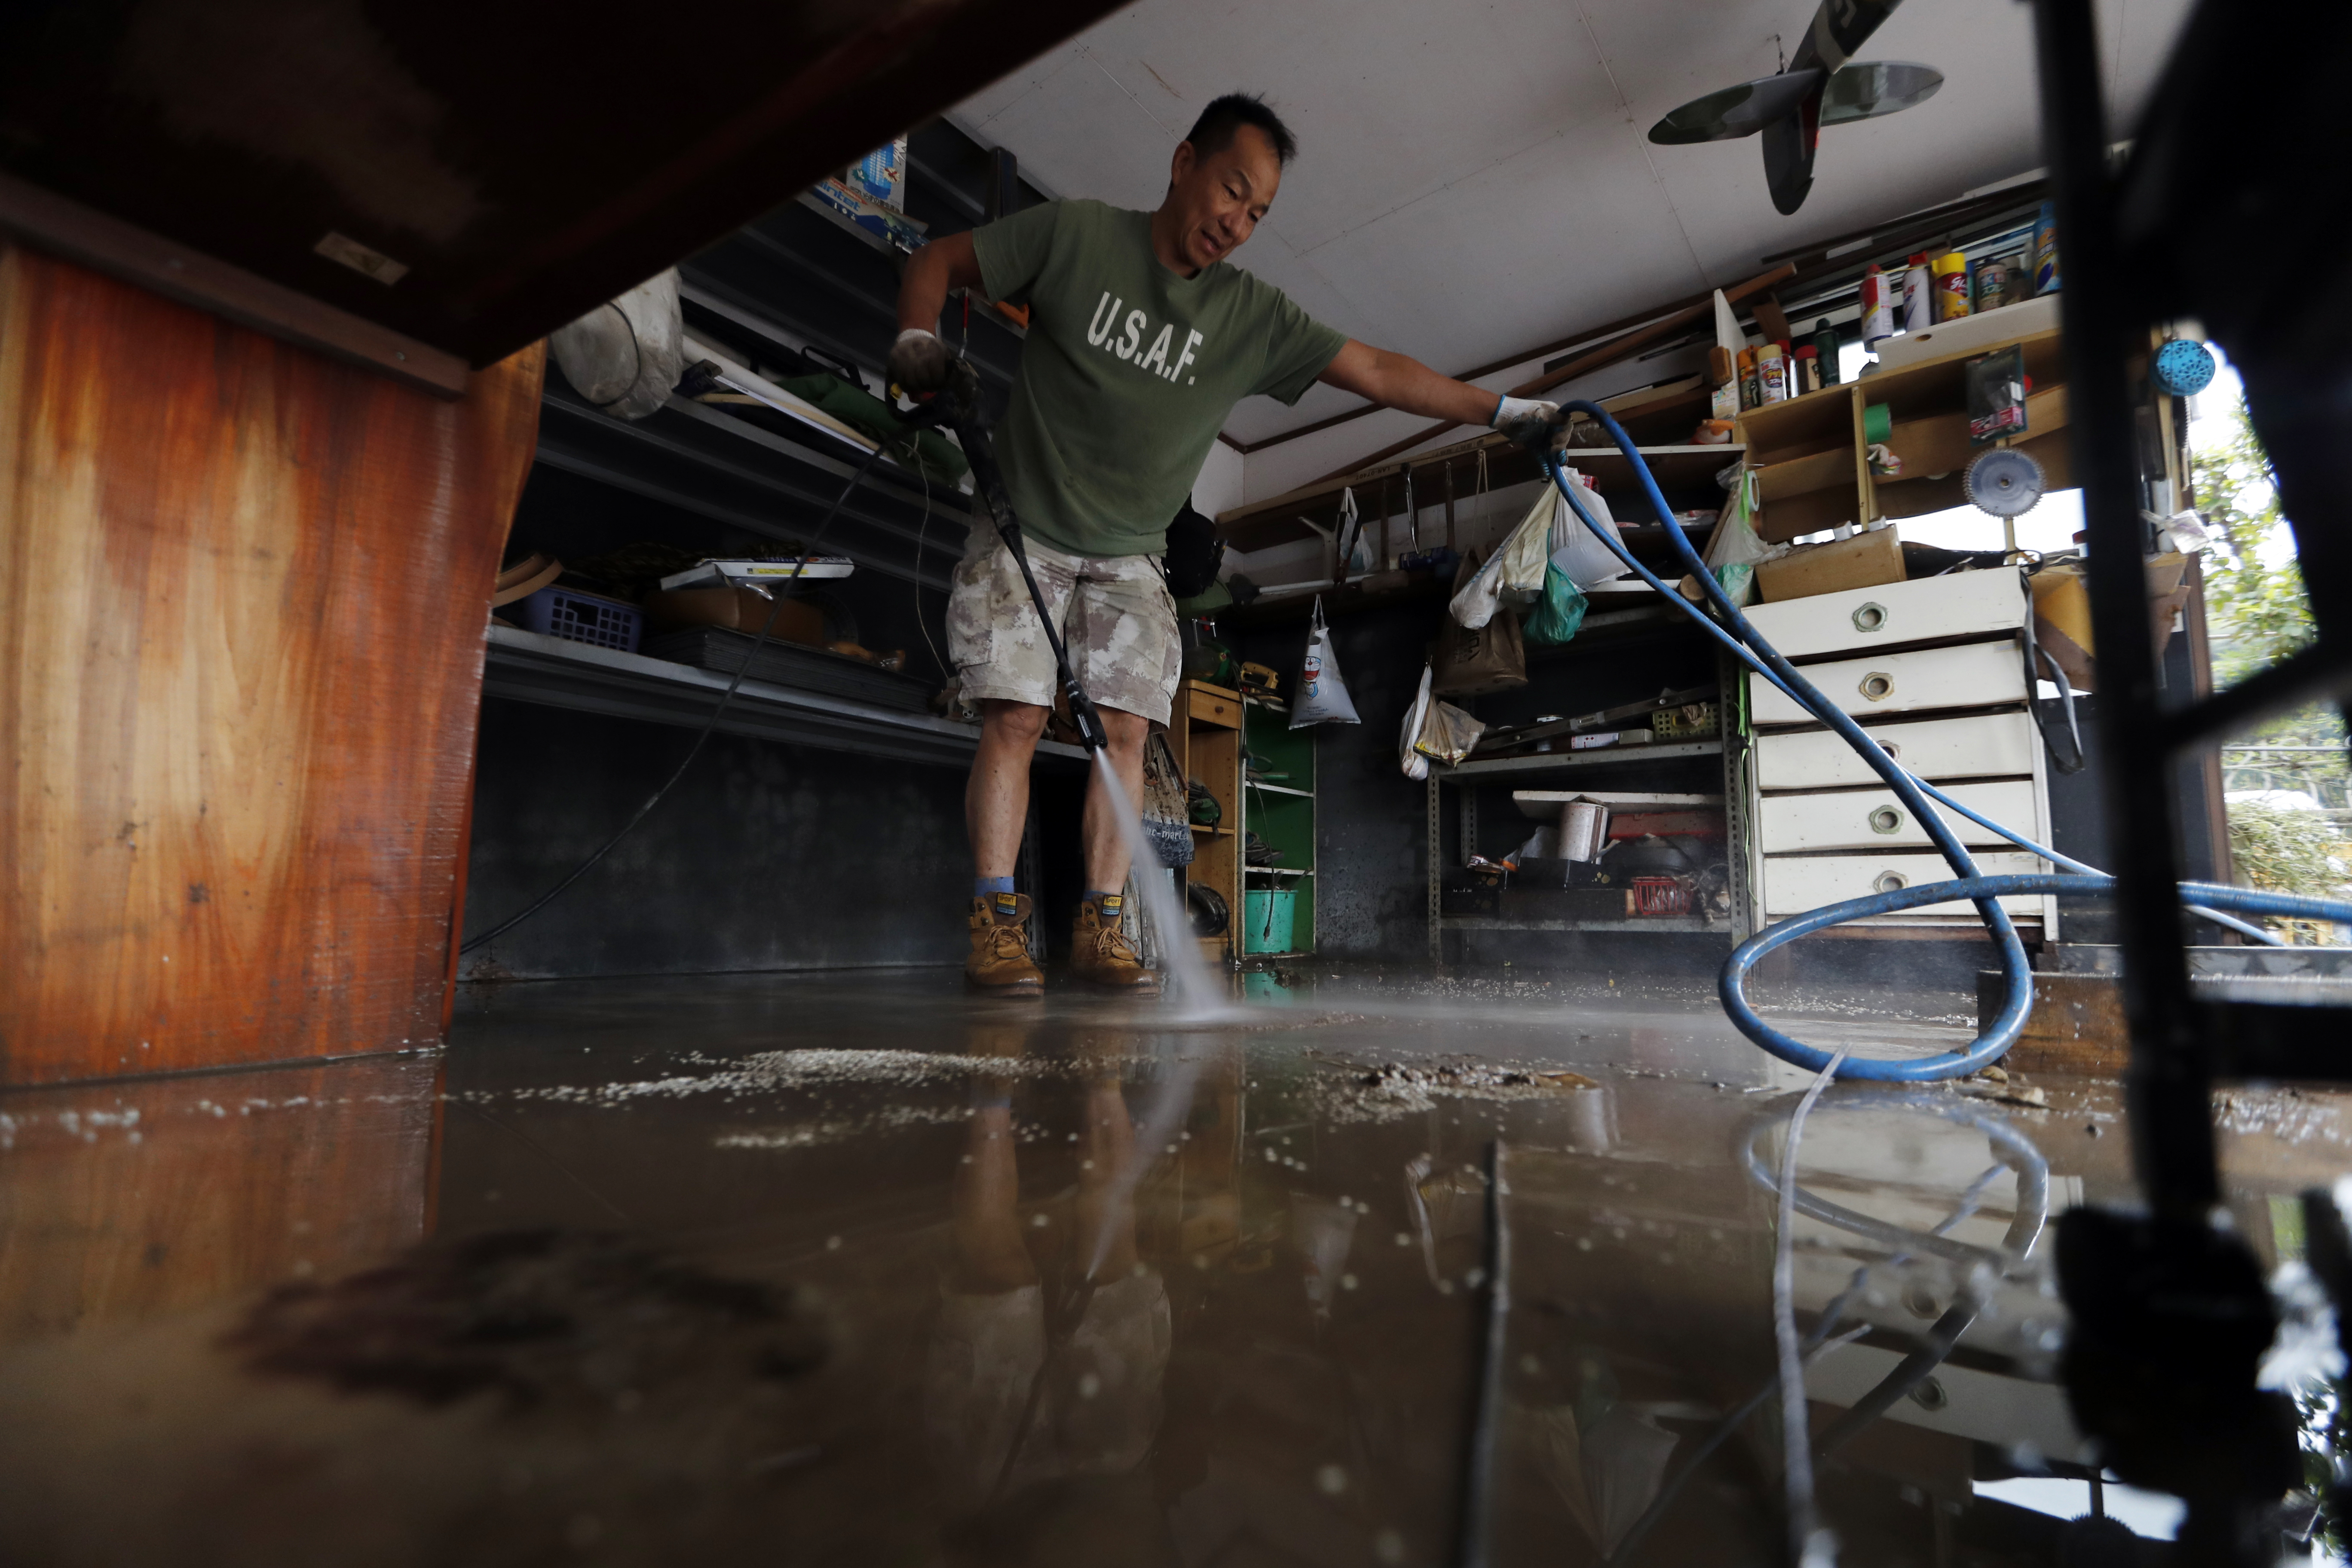 A volunteer helps clean up from Typhoon Hagibis Monday, Oct. 14, 2019, in Kawagoe City, Japan. Rescue crews in Japan dug through mudslides and searched near swollen rivers Monday as they looked for those missing from Hagibis that left as dozens dead and caused serious damage in central and northern Japan. (AP Photo/Eugene Hoshiko)